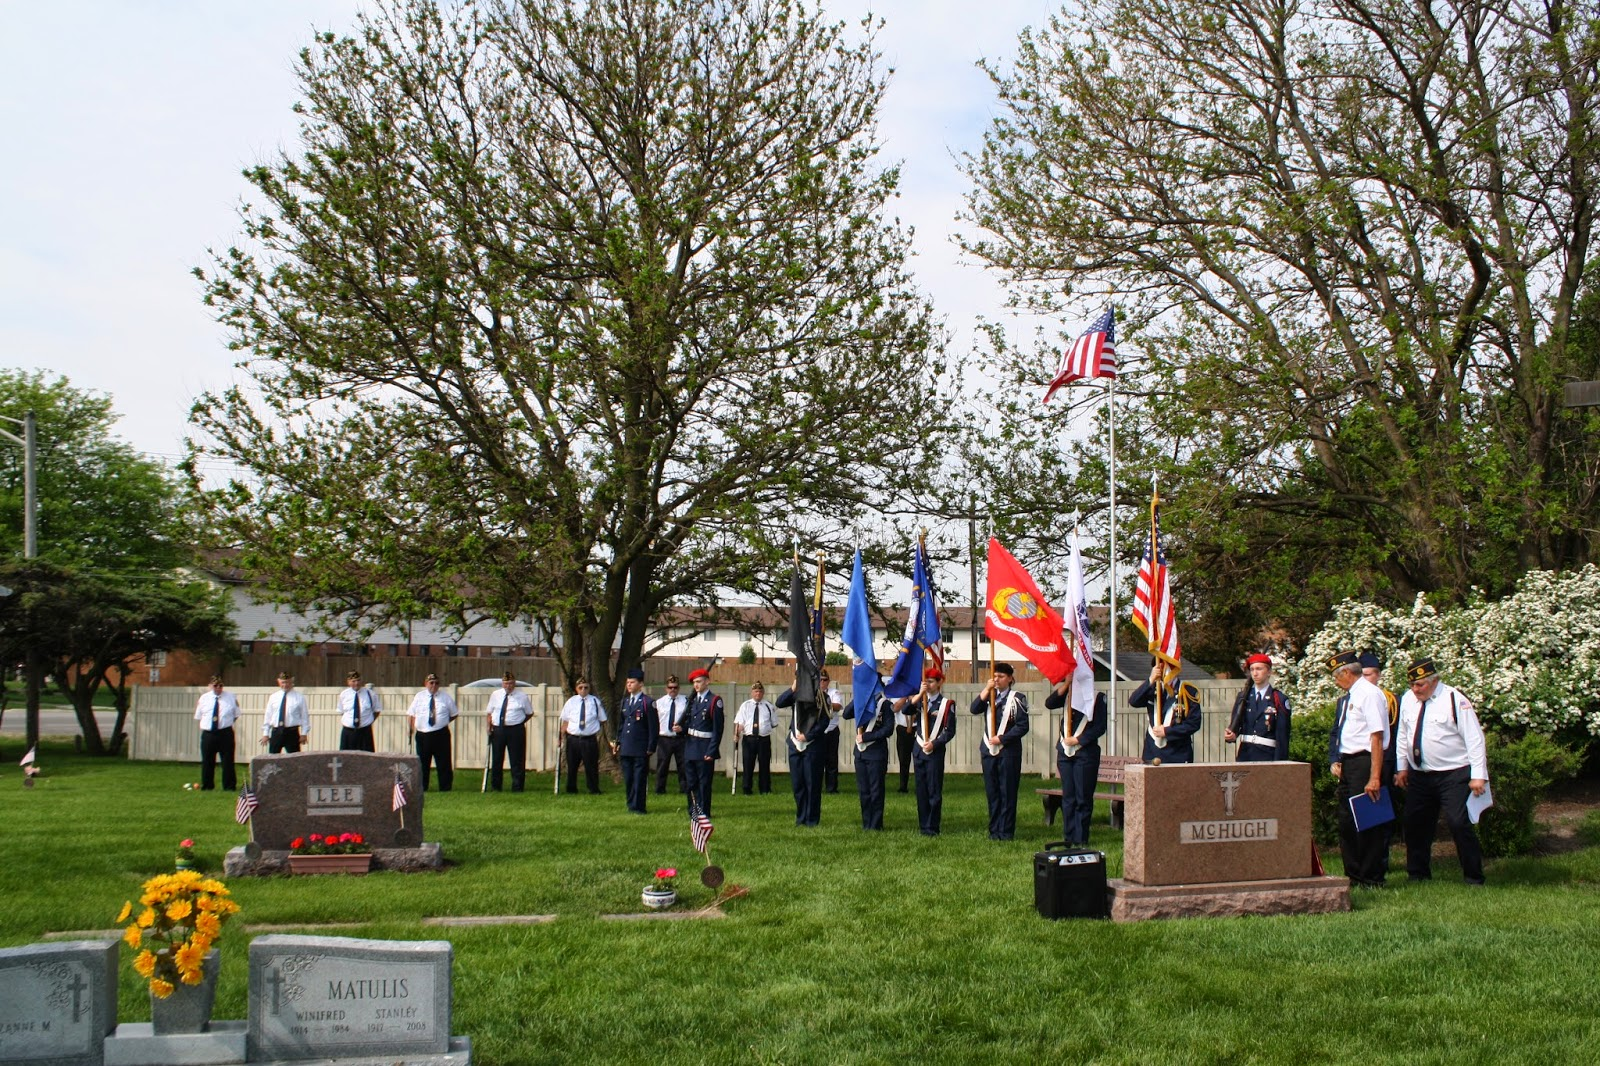 Illinois will county manhattan - Members Of Lincoln Way Rotc And Manhattan American Legion Post 935 Conduct Memorial Day Services At St Joseph S Cemetery In Manhattan Illinois